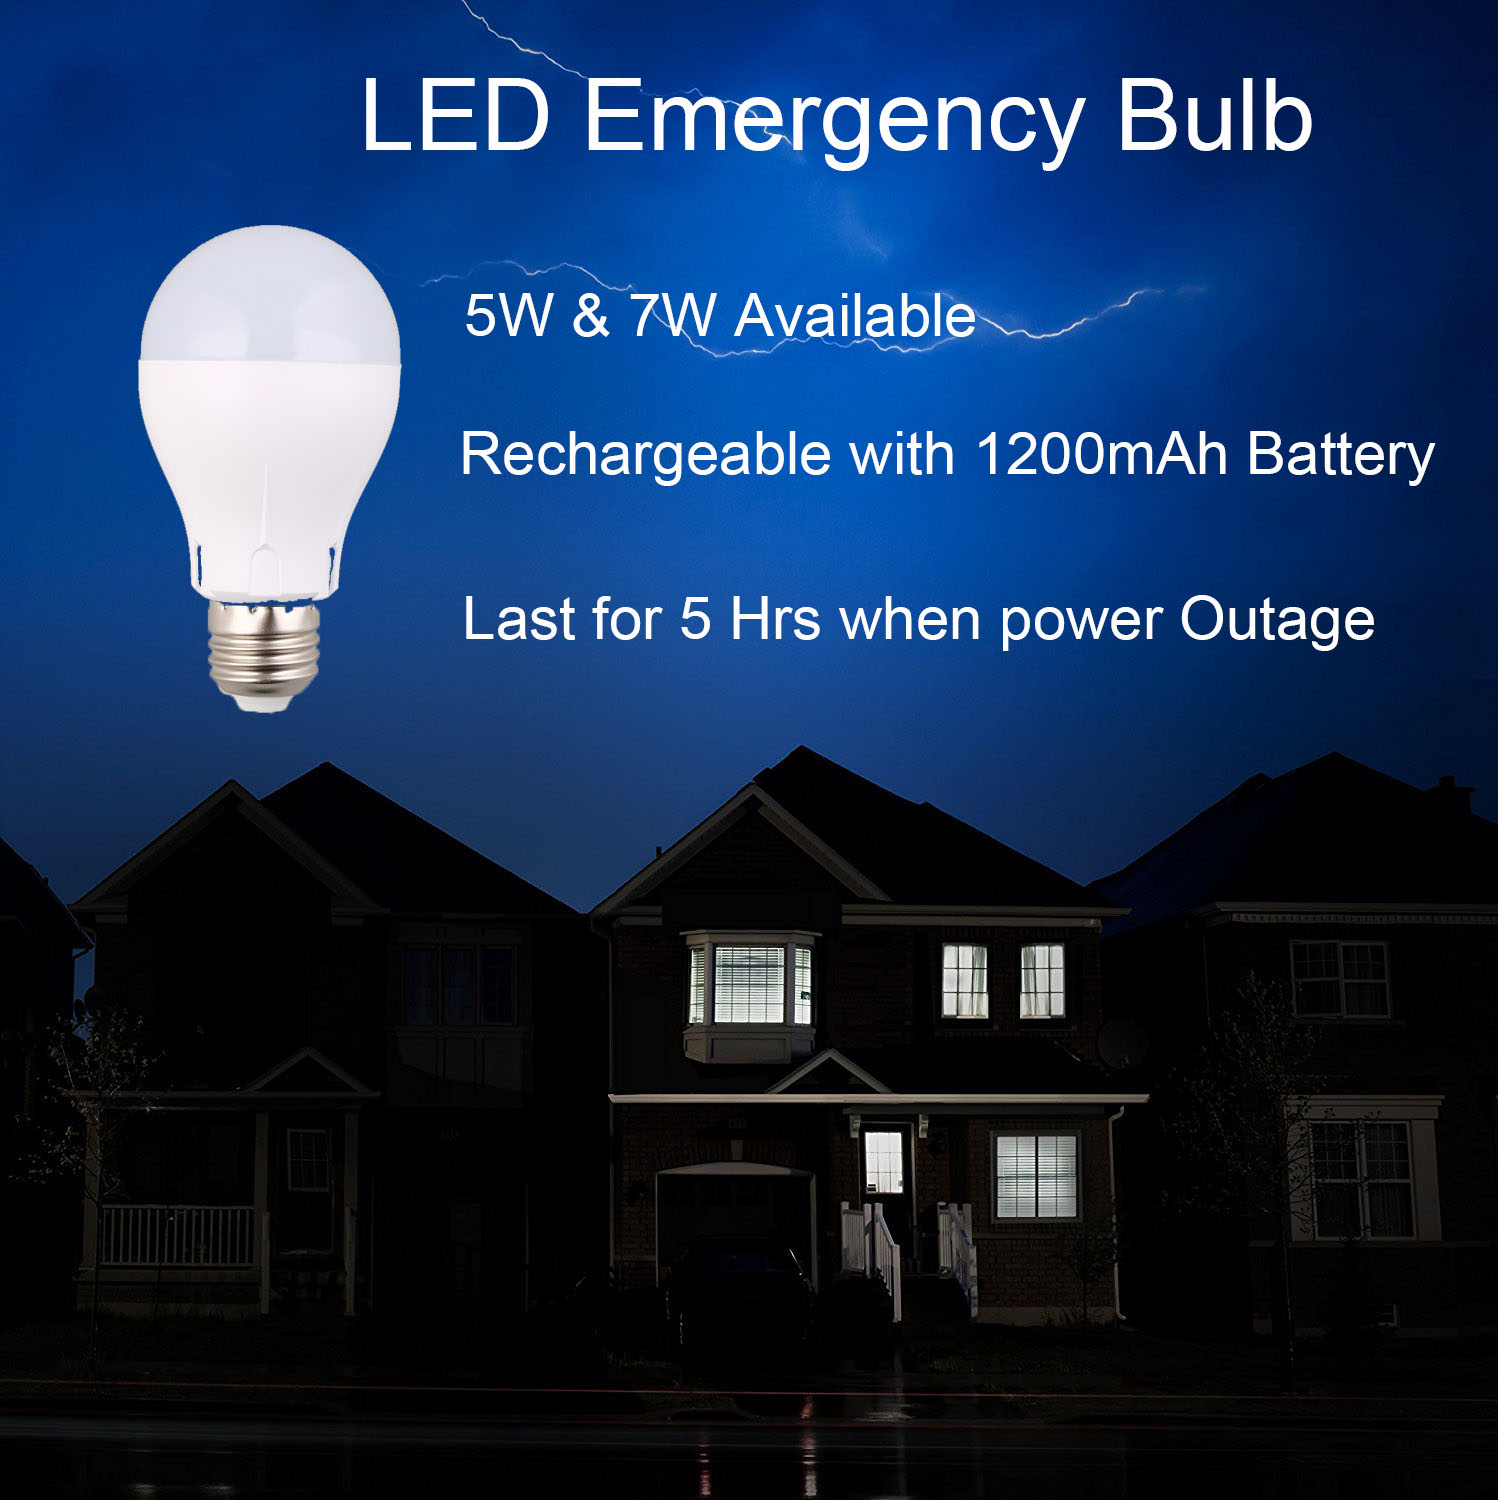 LED Emergency Bulb Light.jpg